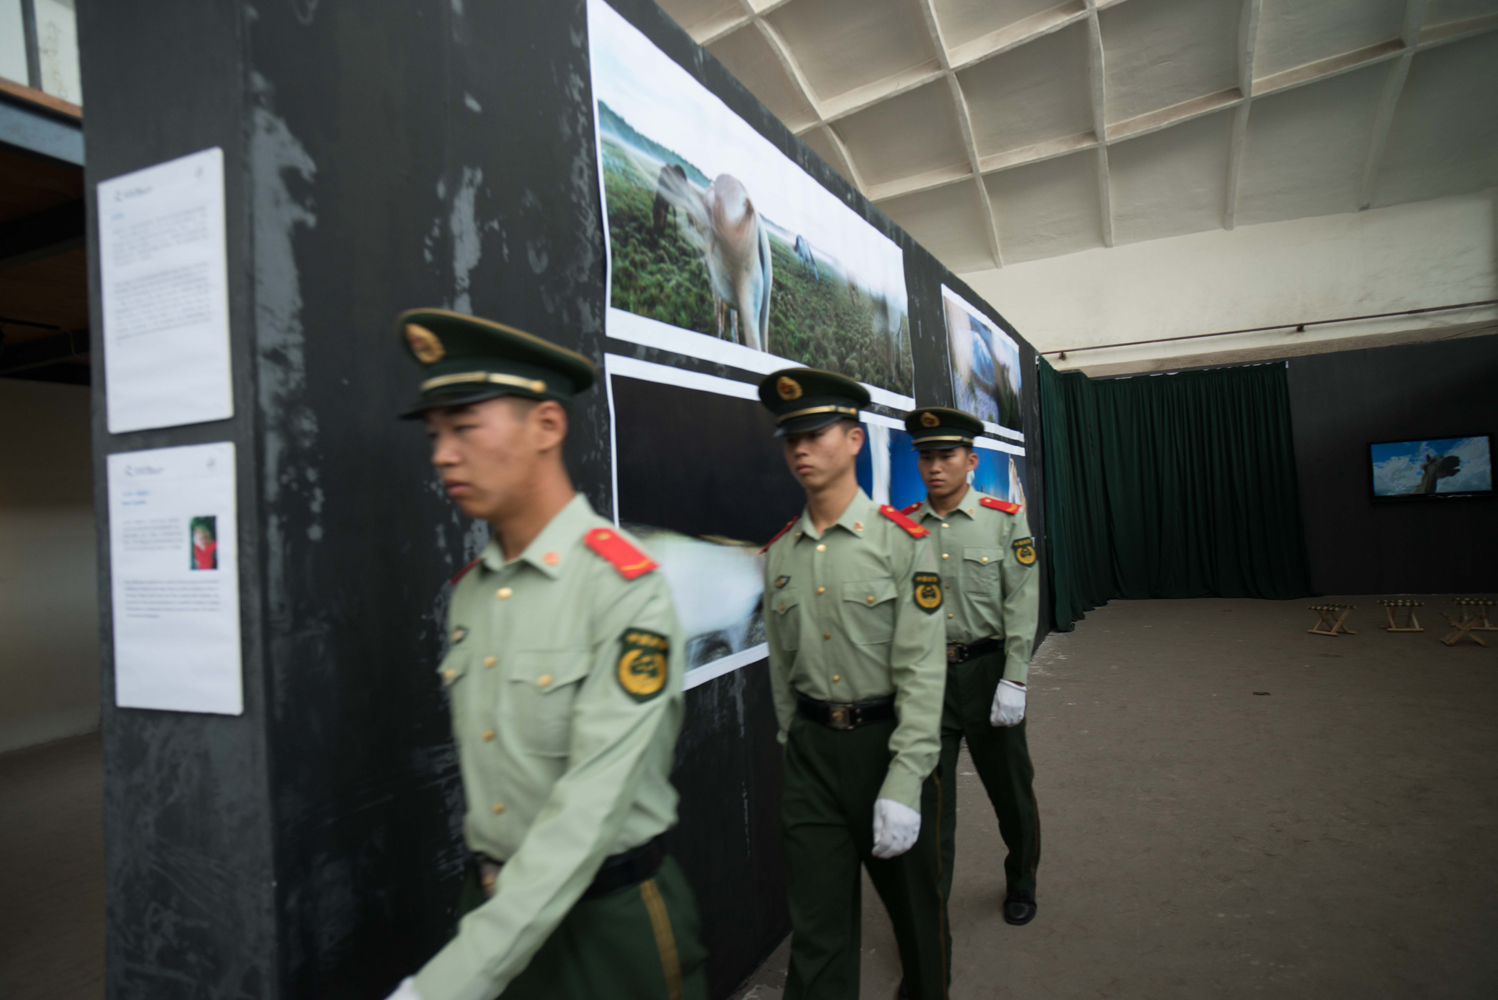 Chinese soldiers inspecting the show